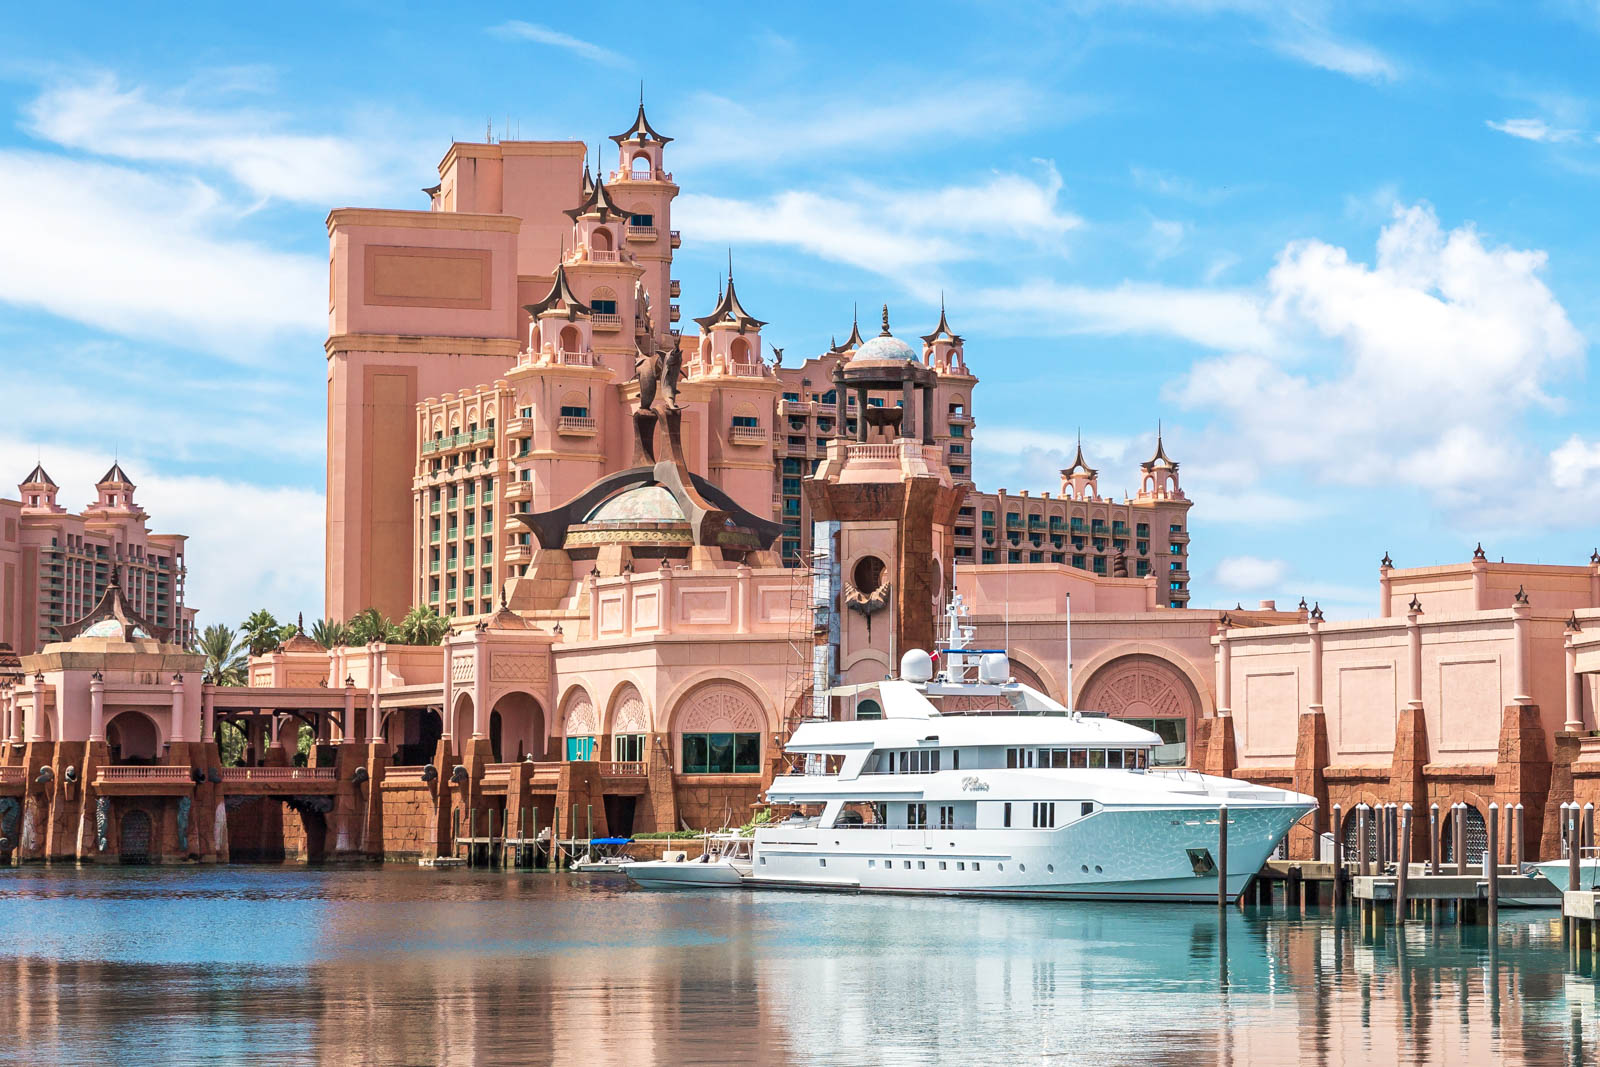 The Atlantis Paradise Island resort, located in the Bahamas. One of the best things to do in Atlantis Bahamas and best things to do in Nassau is the world class casino.